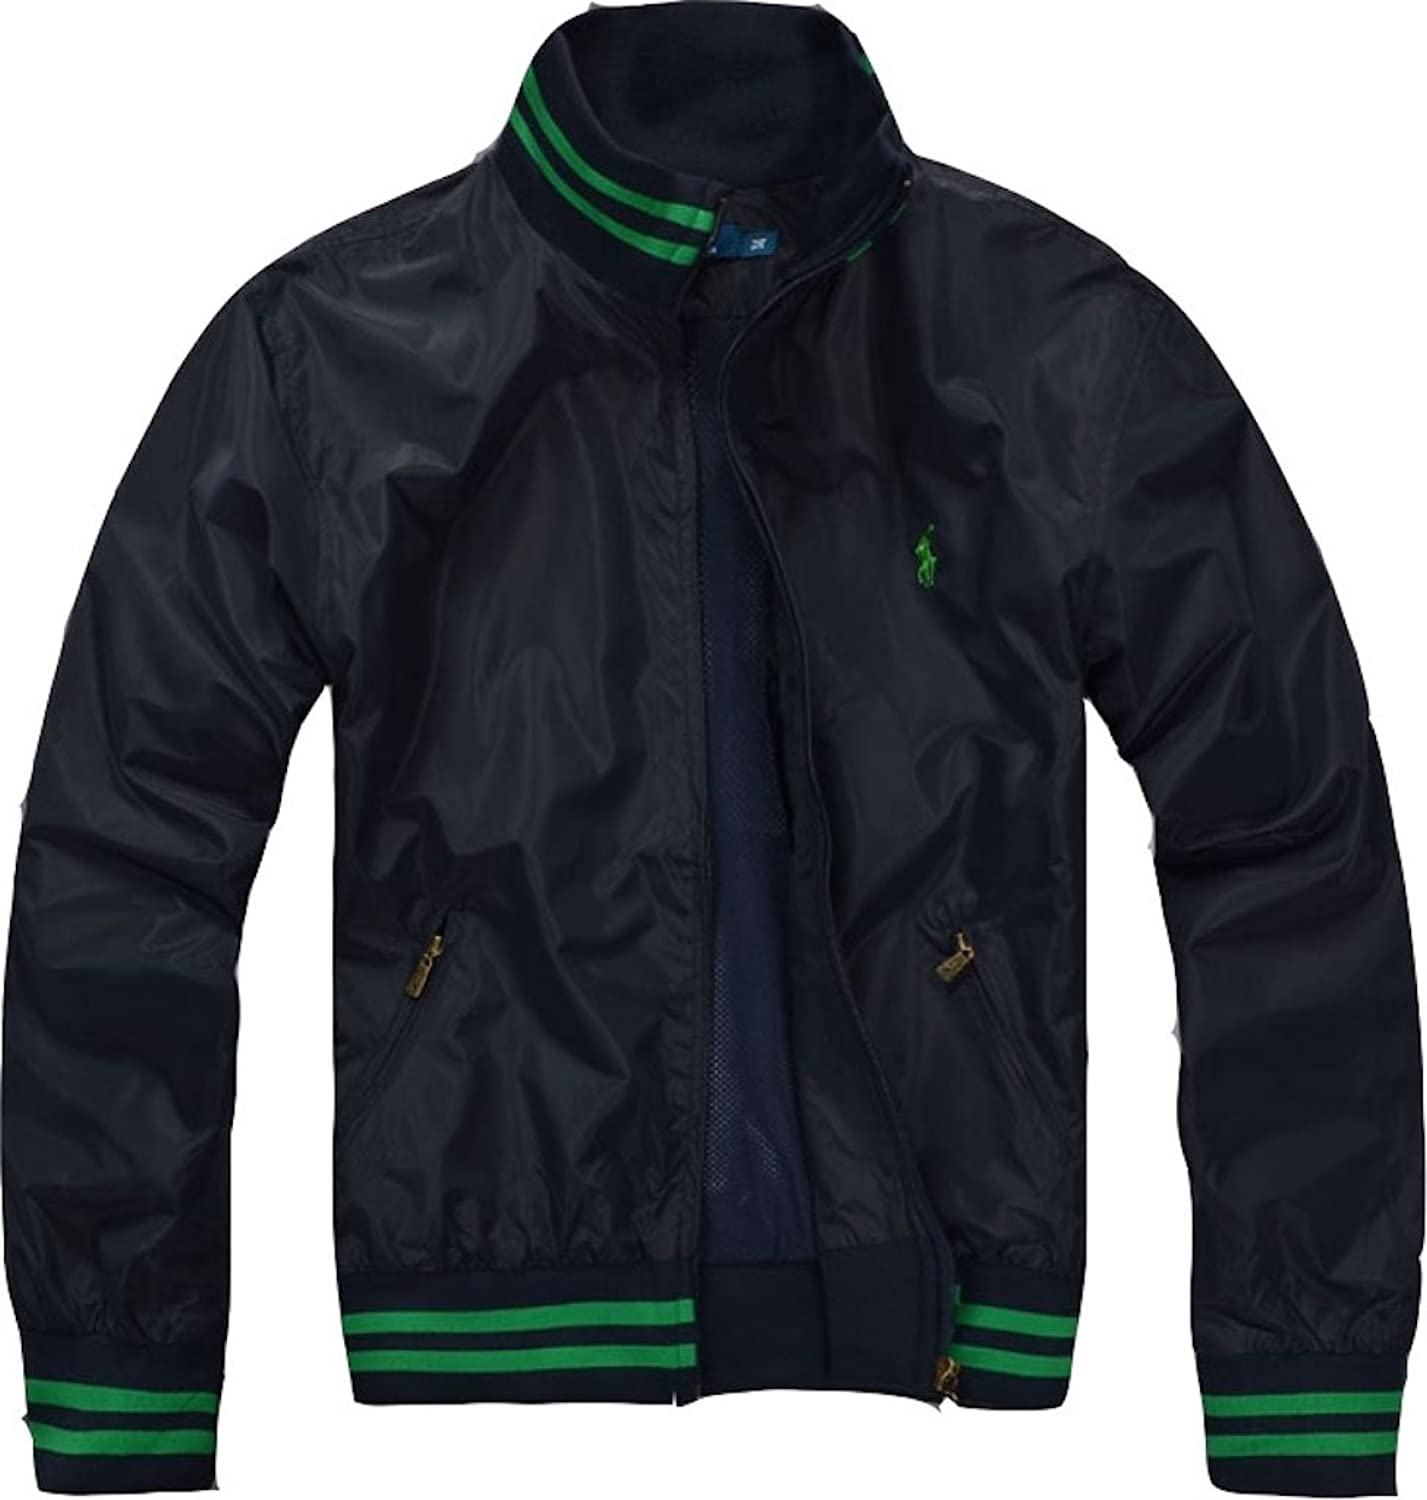 Bomber Jacket With Chest Logo. In Black XL